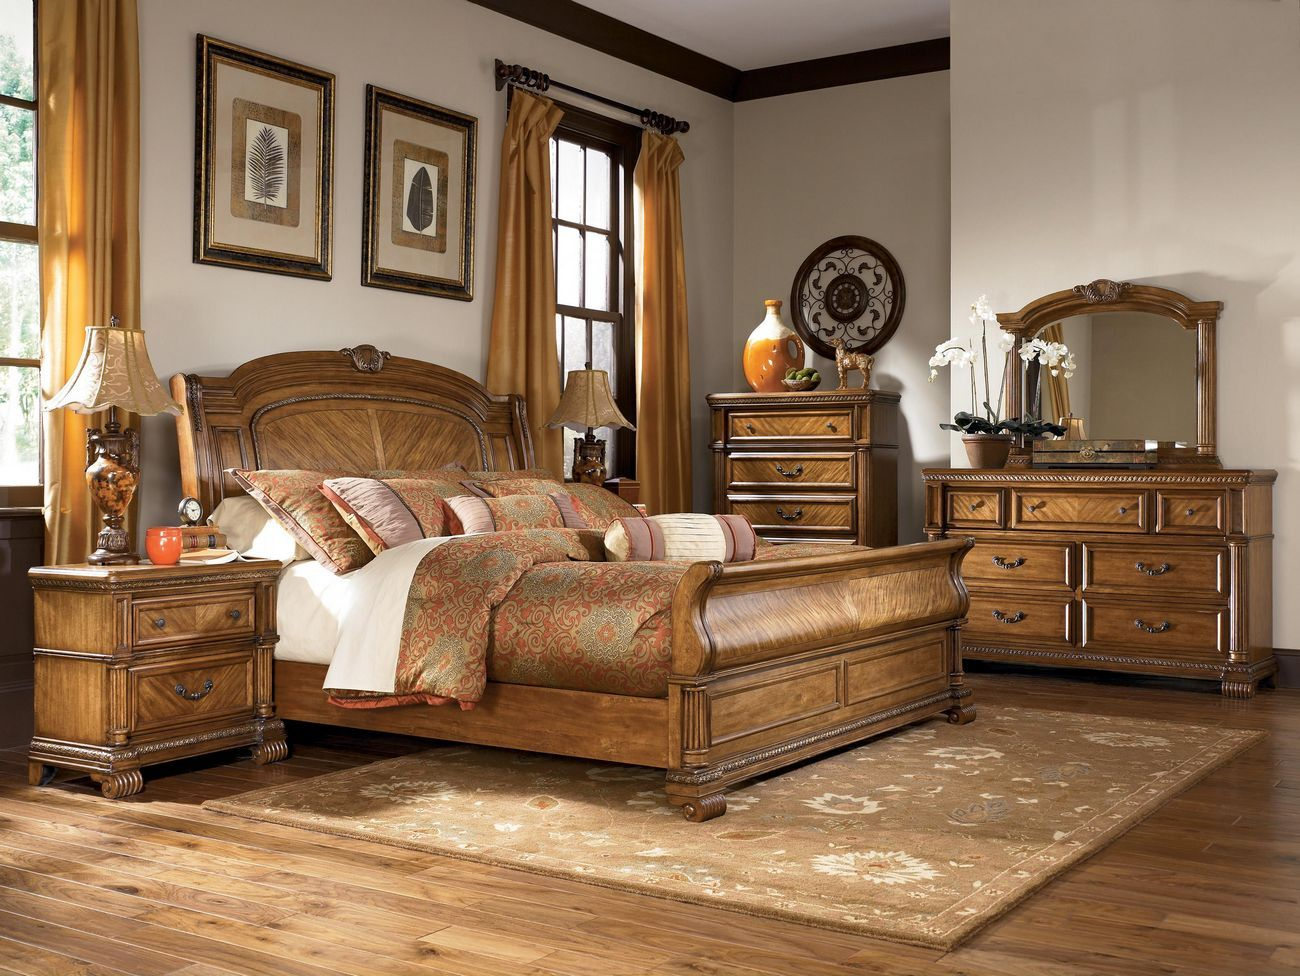 Ashley millennium clearwater b680 king sleigh bedroom for Bedroom designs with sleigh beds